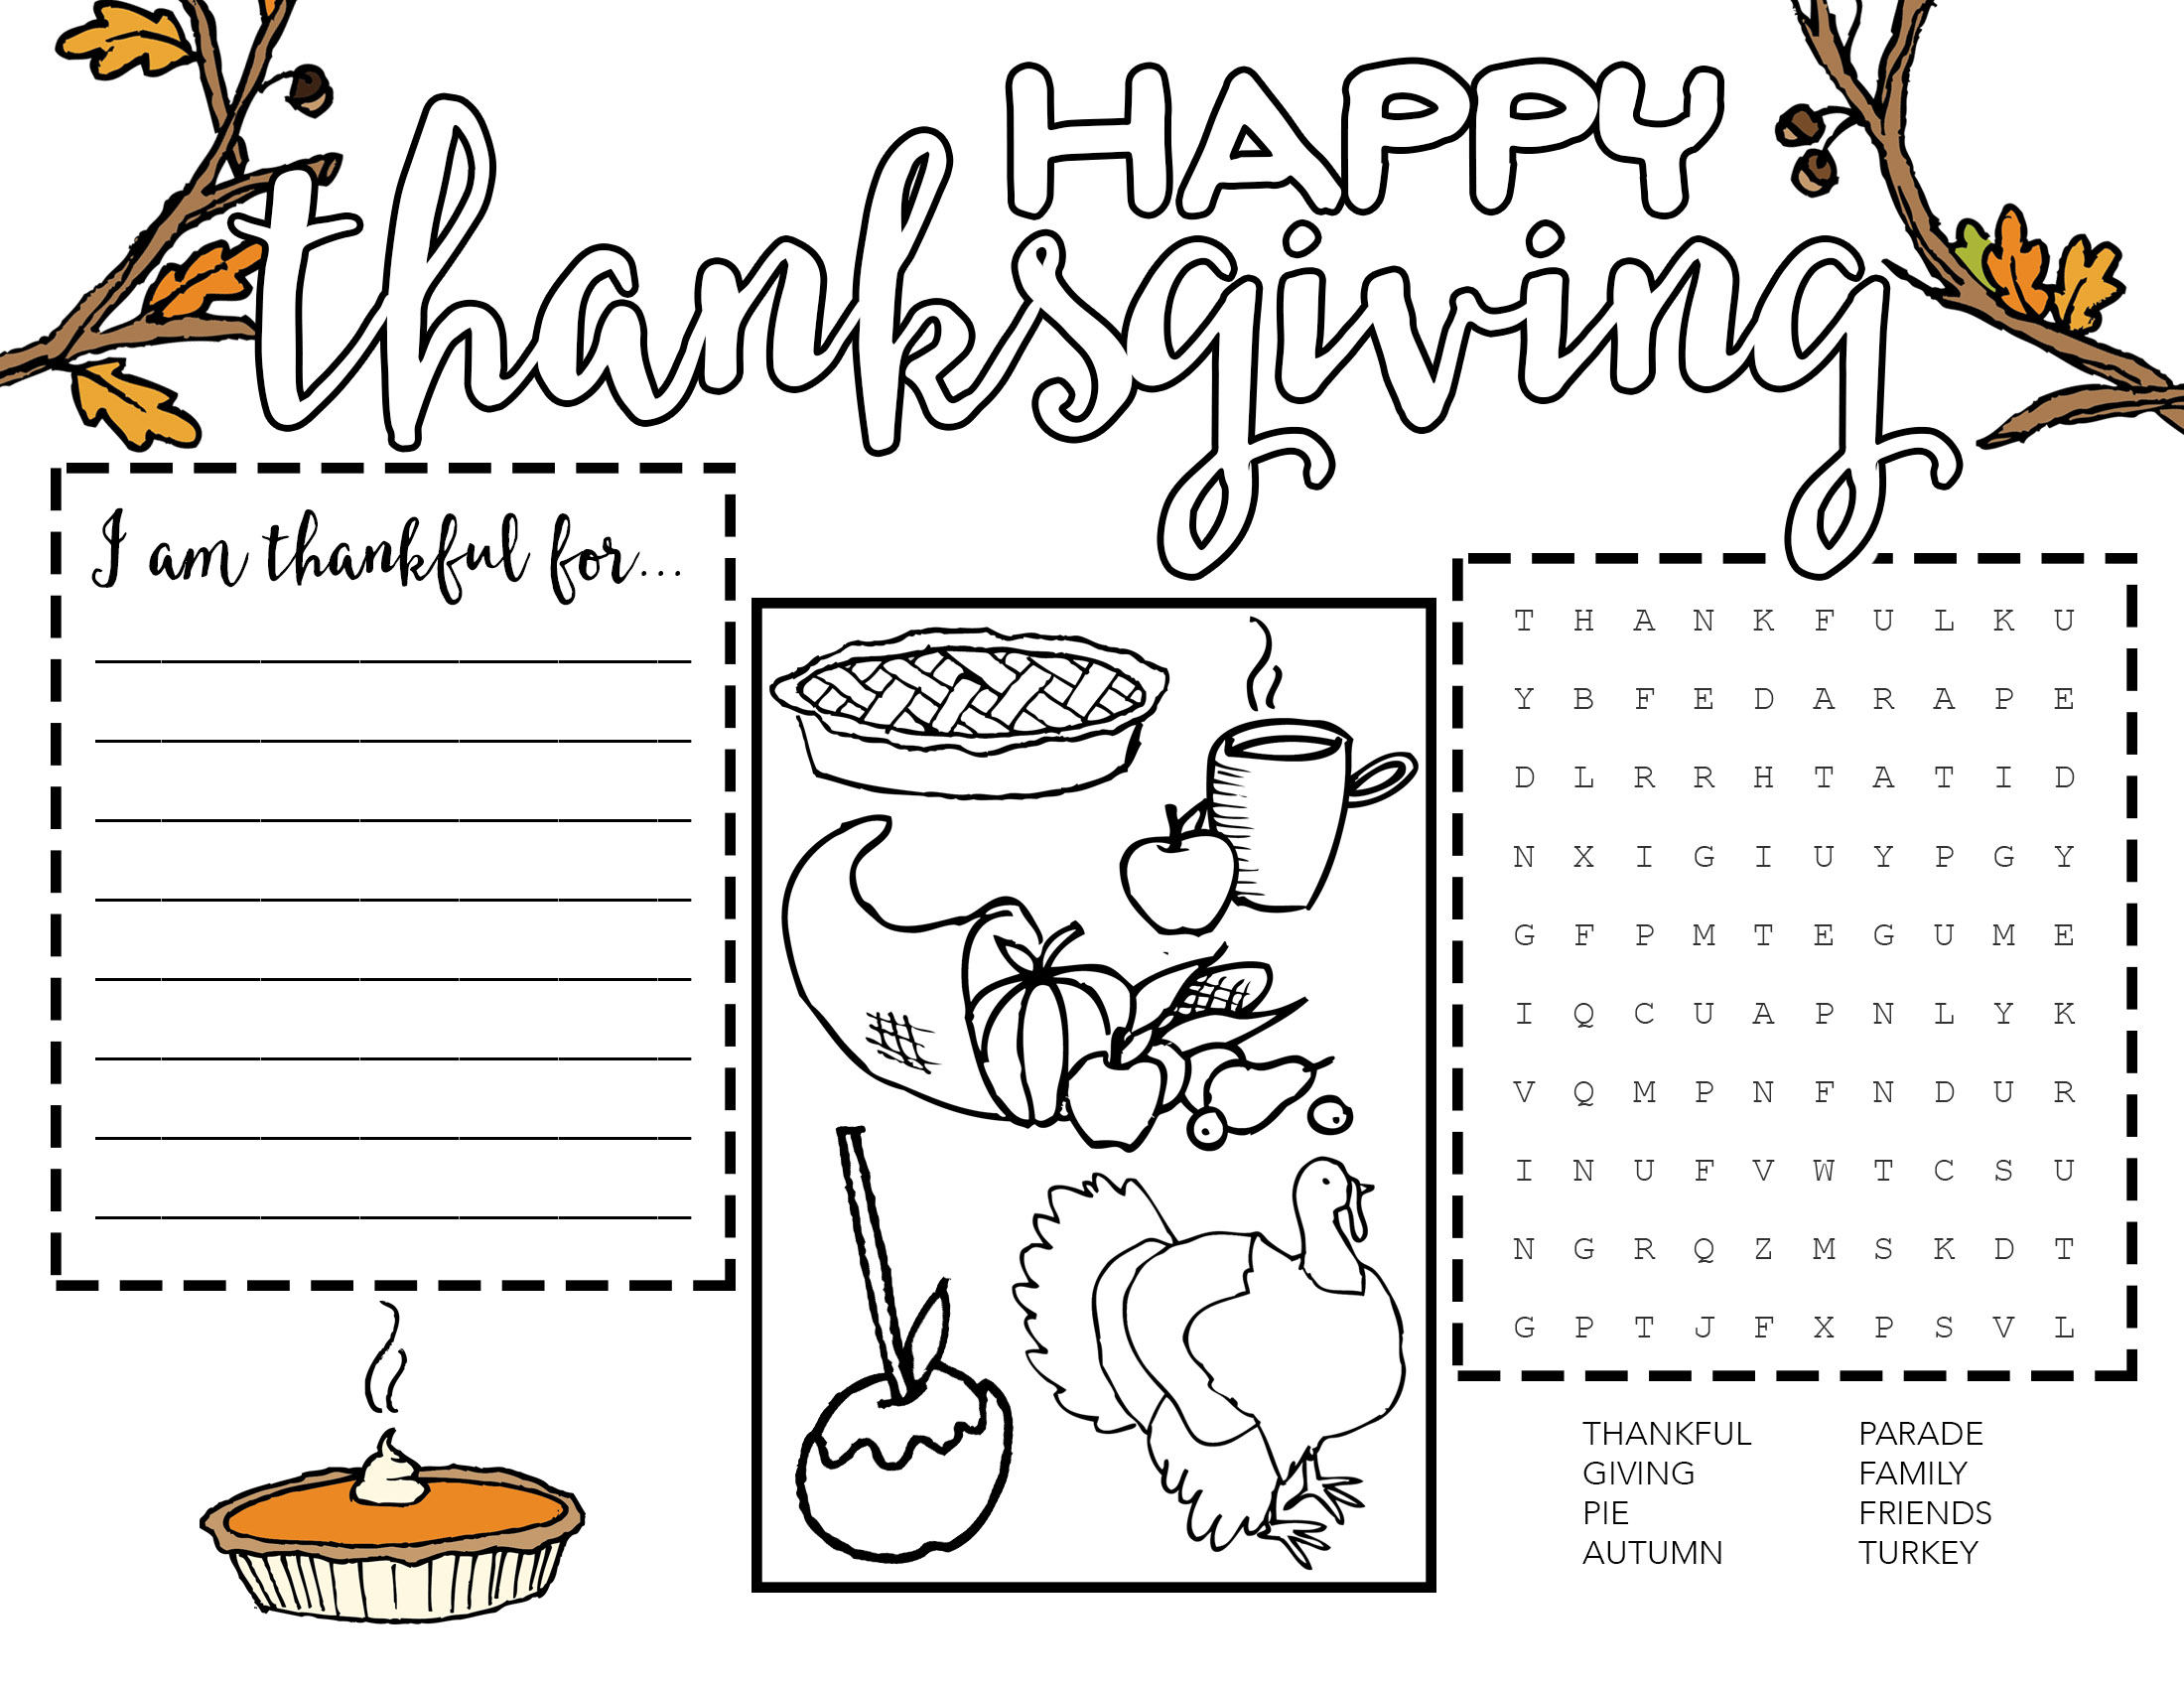 Free Printable Thanksgiving Placemat